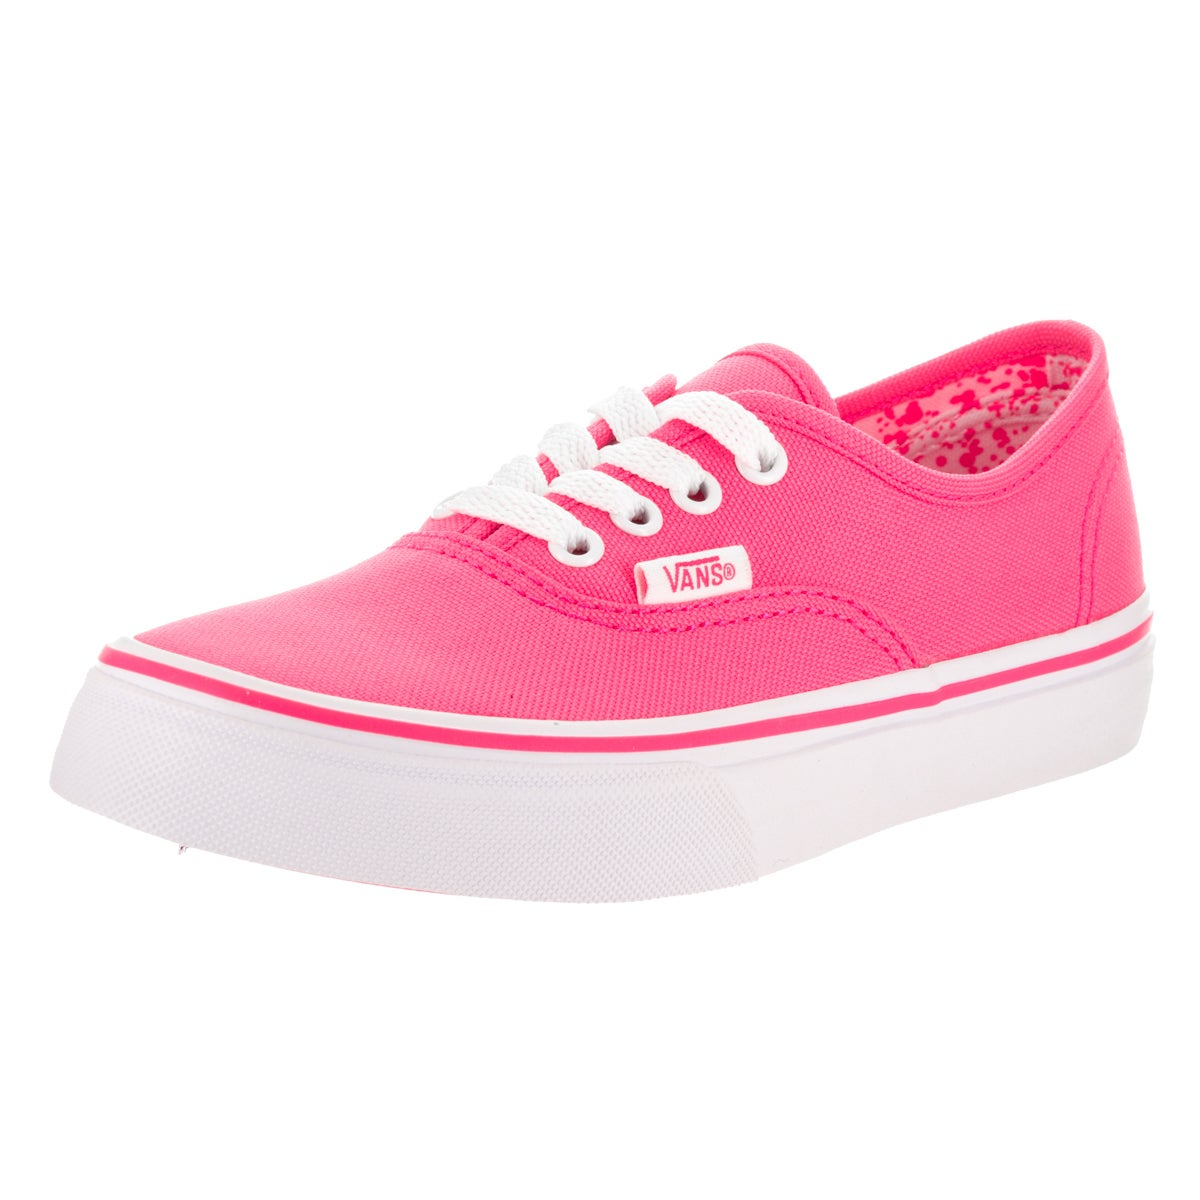 a3ae6f9770d Shop Vans Kid s Pink Neon Splatter Canvas Authentic Skate Shoe - Free  Shipping Today - Overstock.com - 14012177